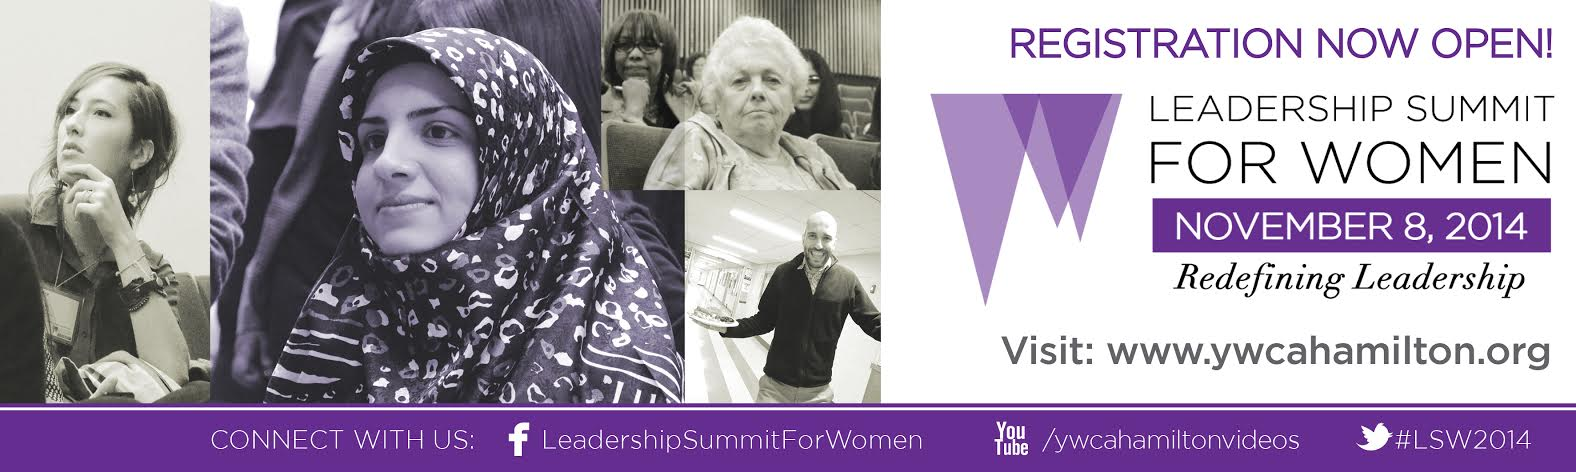 Also, check out the YWCA Leadership Summit for Women!